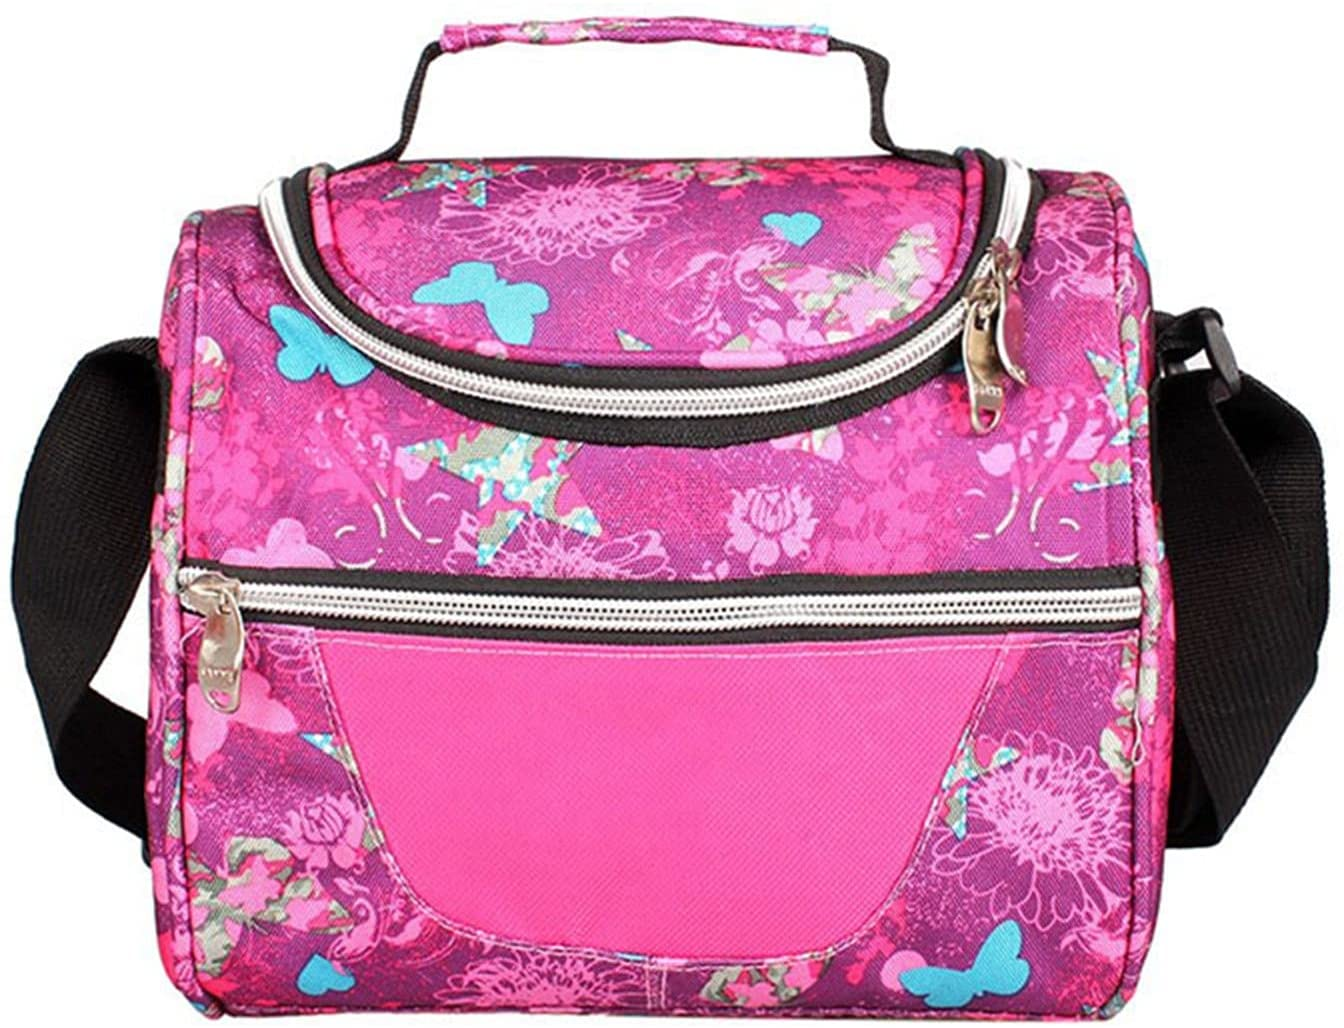 Fresno Mall Kids Lunch Bag Long Beach Mall Thermal Insulated Picnic School Wo for Box Cooler